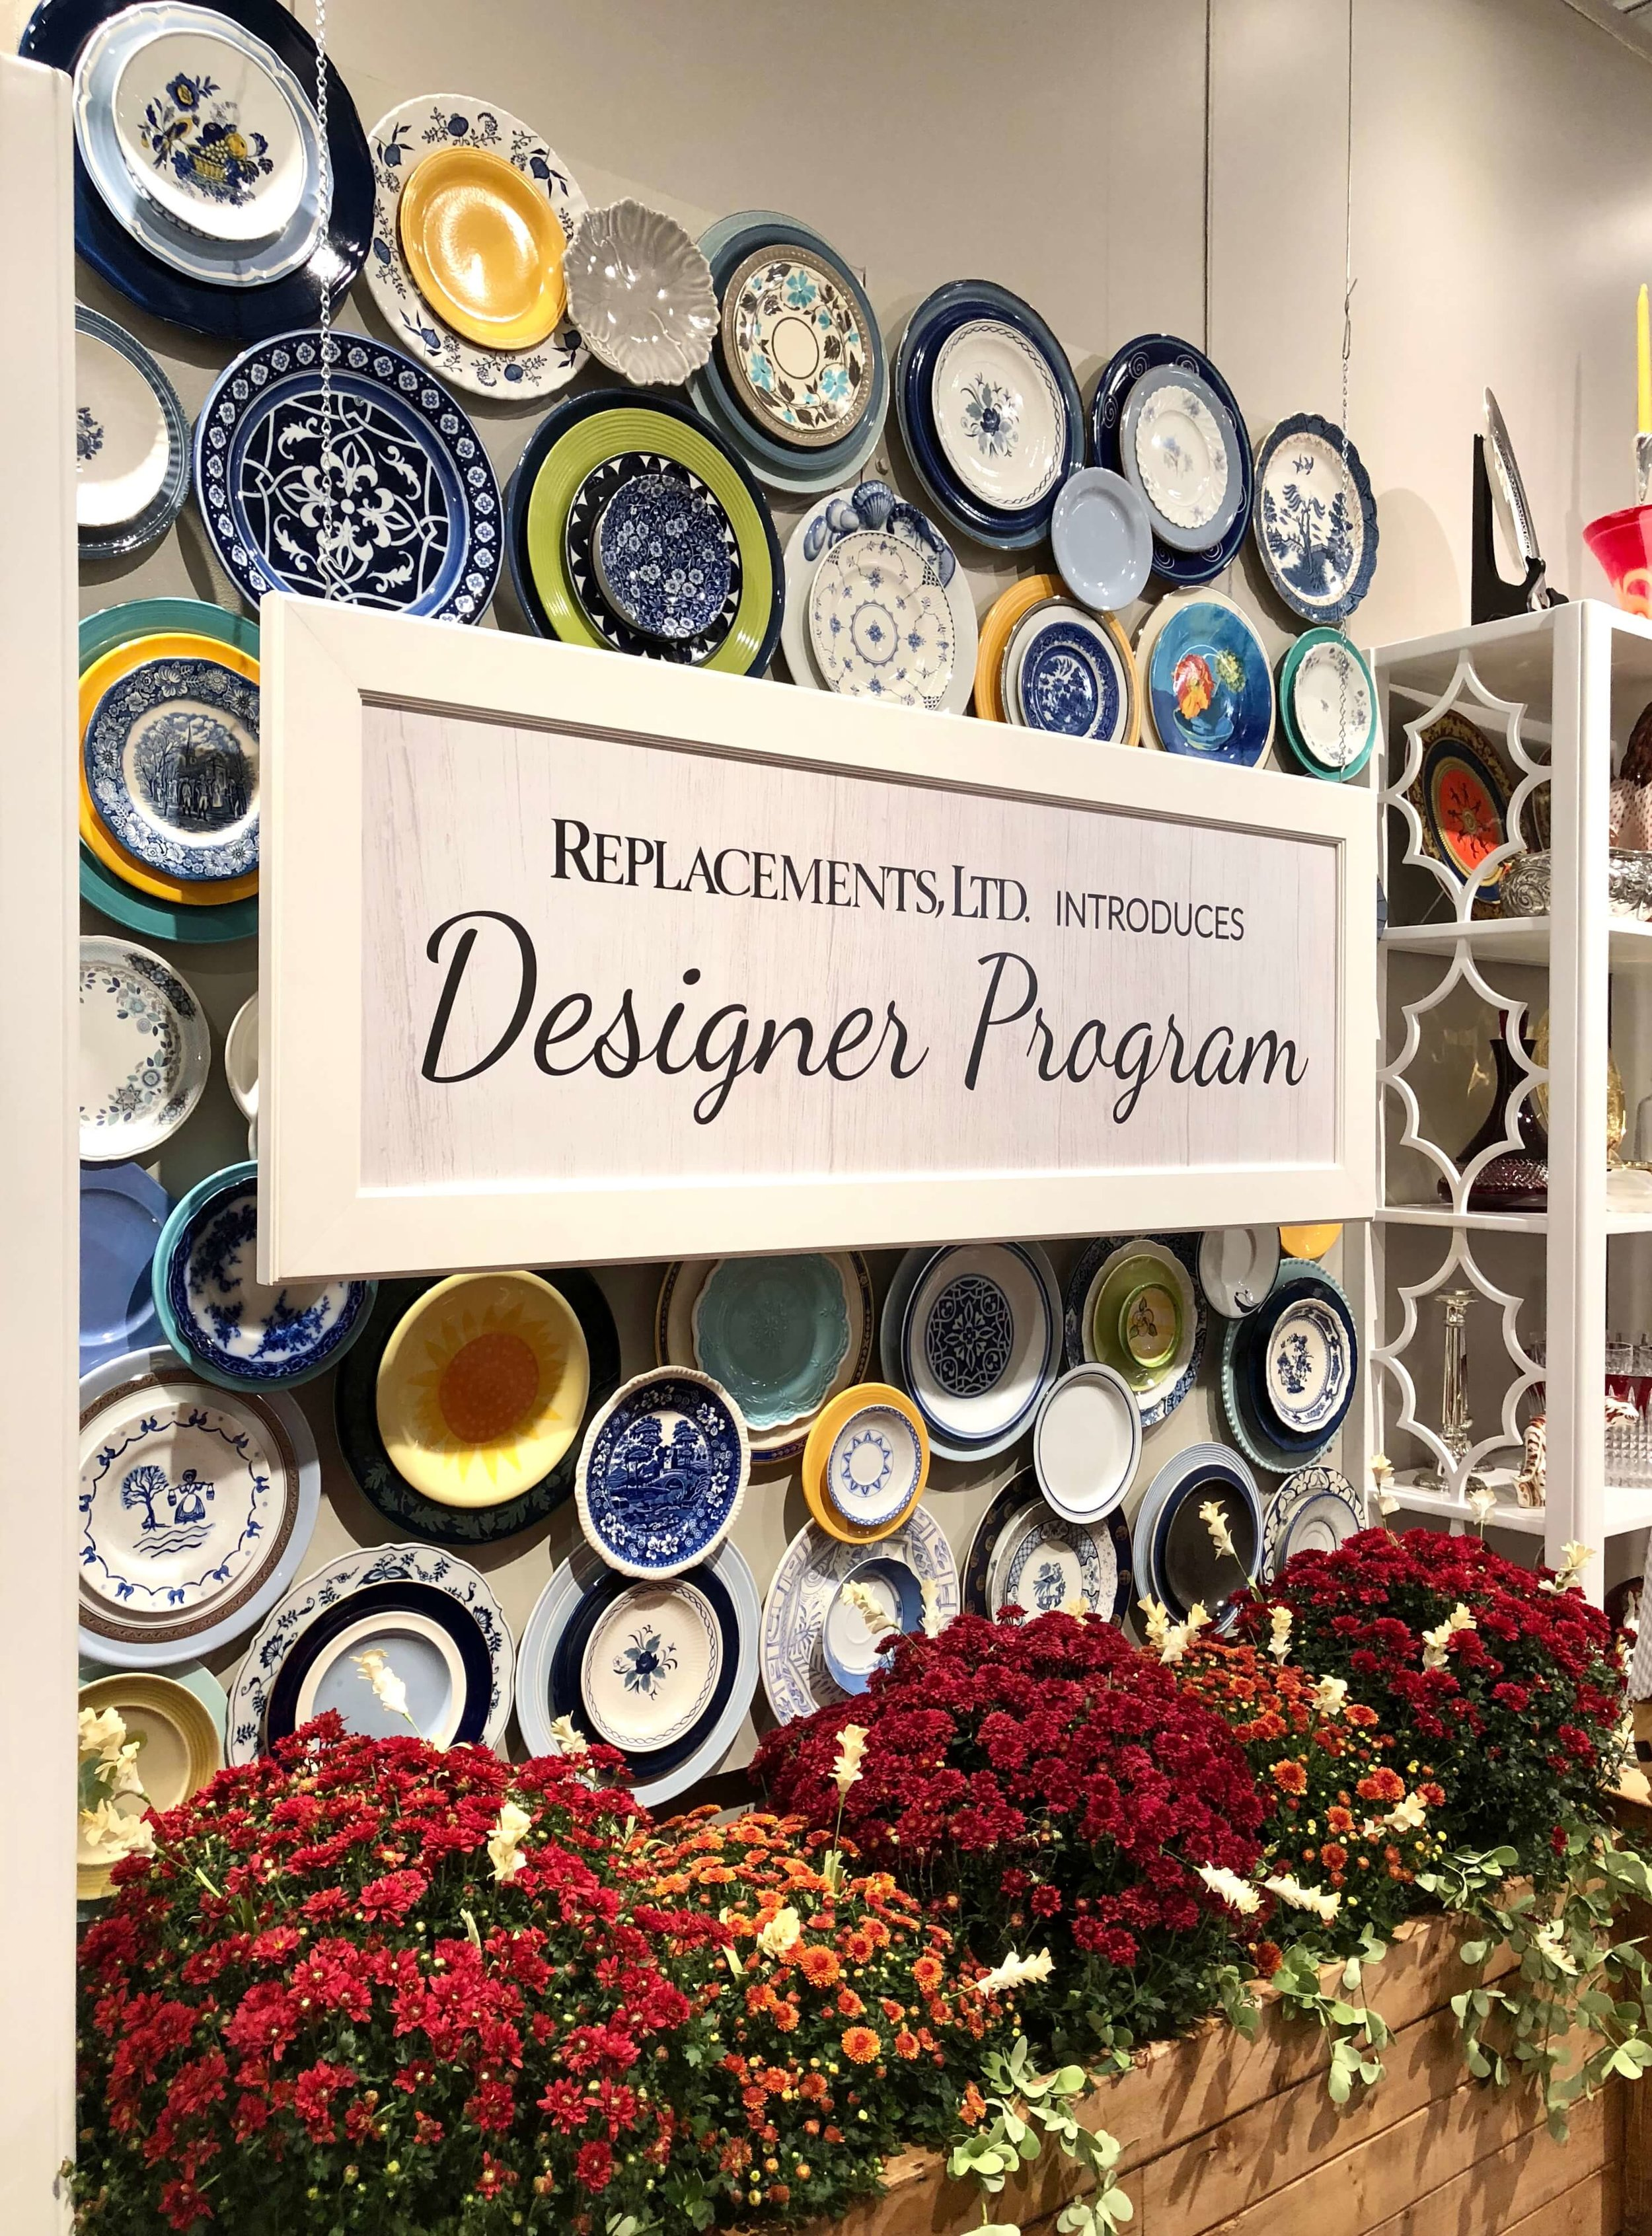 Plate wall at the Replacements, Ltd. showroom #hpmkt #platewall #wallplates #walldecor #platesonthewall